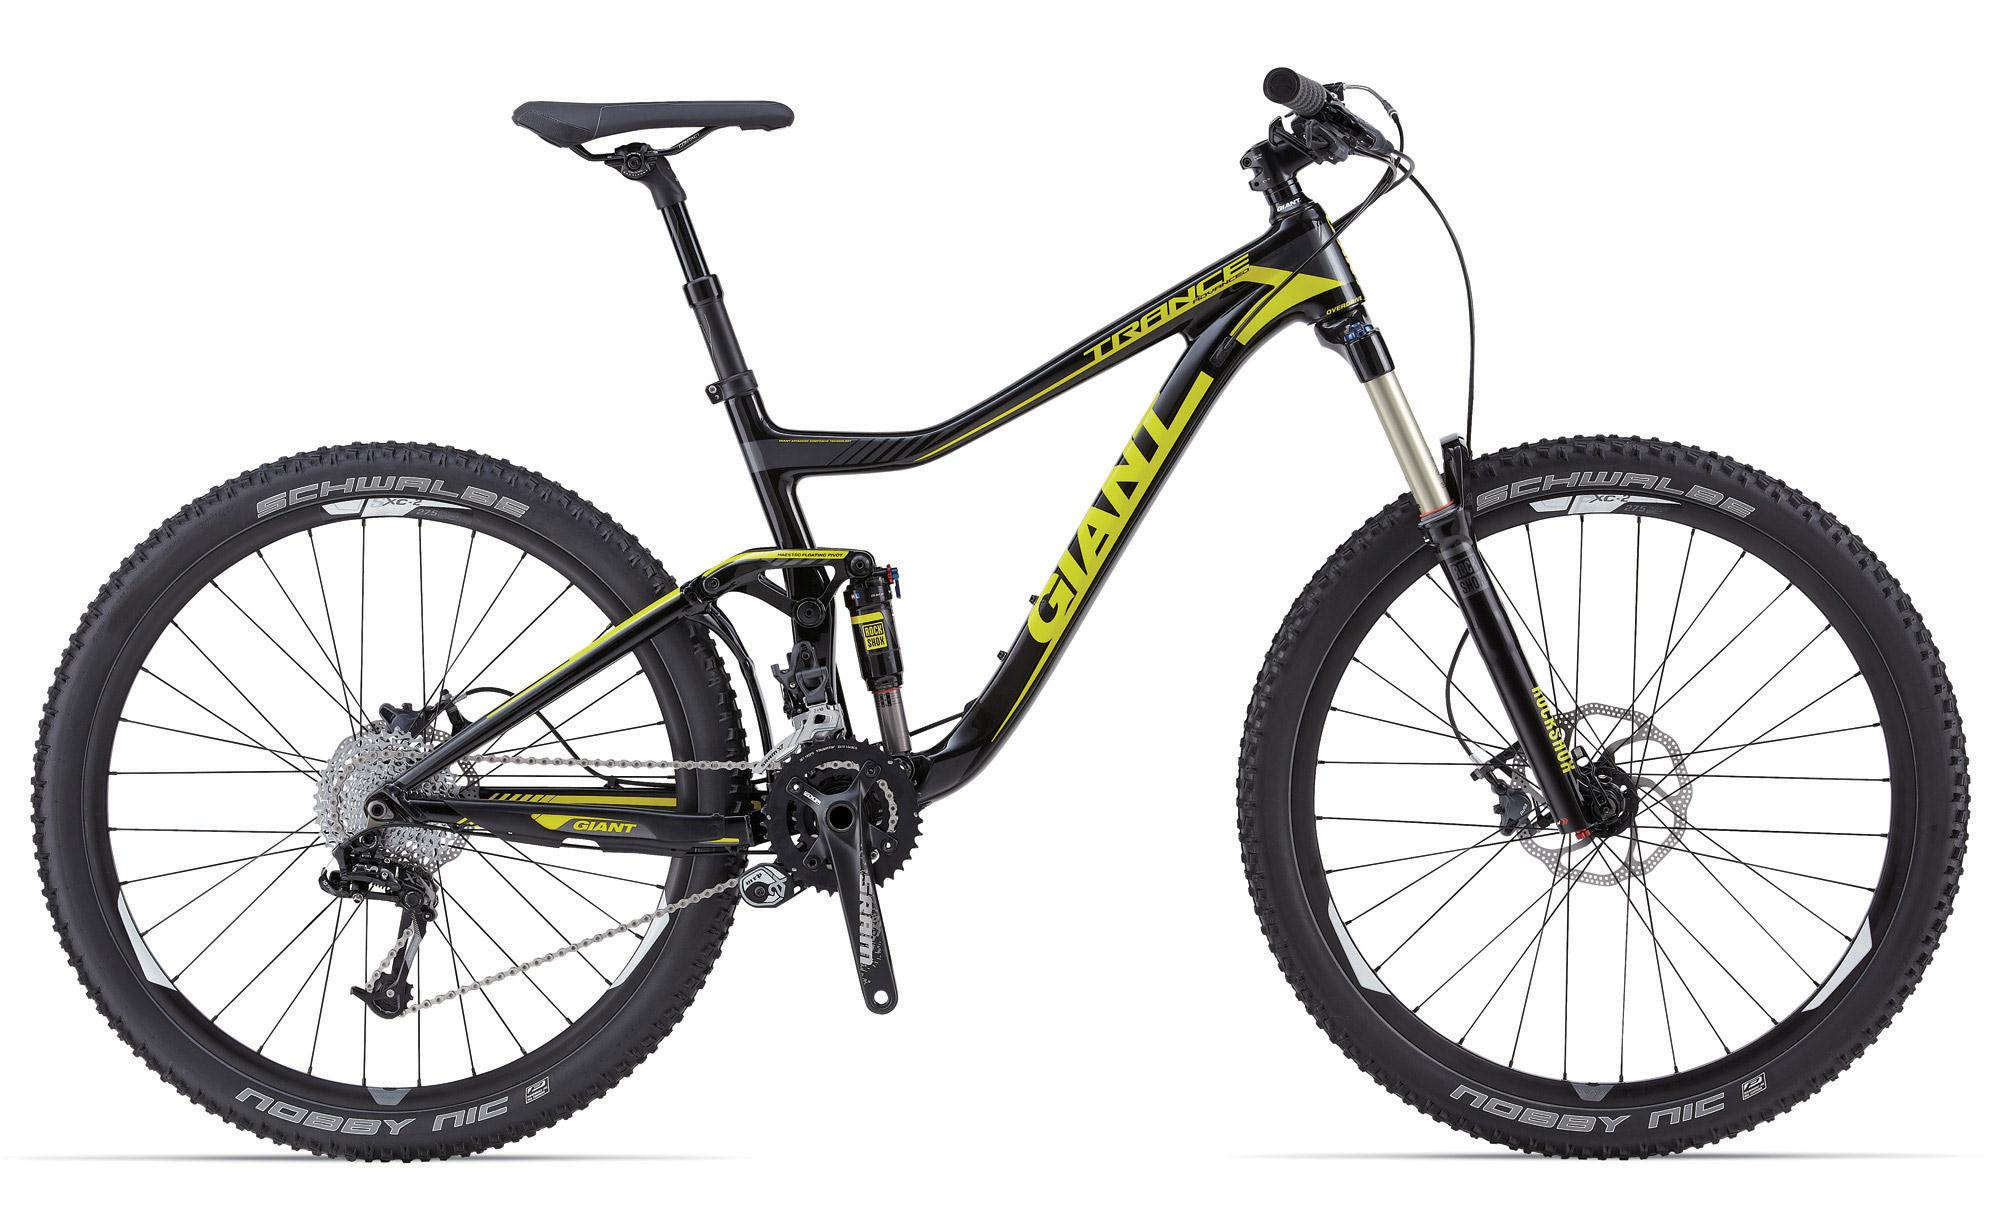 Giant Trance Advanced 27.5 2 (2014) longterm review - MBR